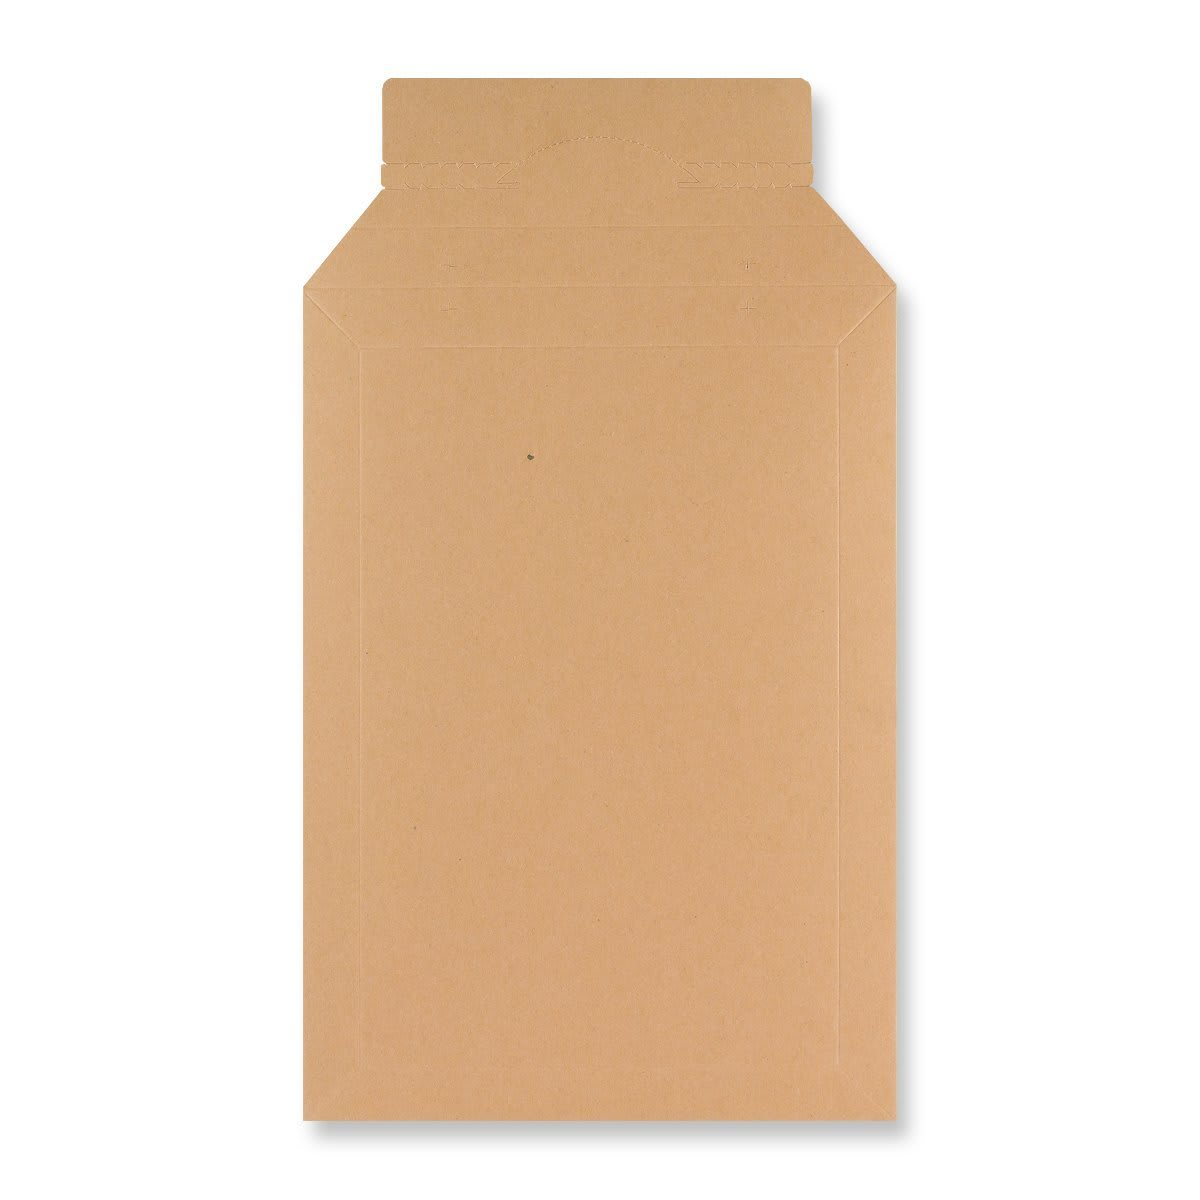 370 x 285mm SOLID MANILLA ALL BOARD MAILER ENVELOPES